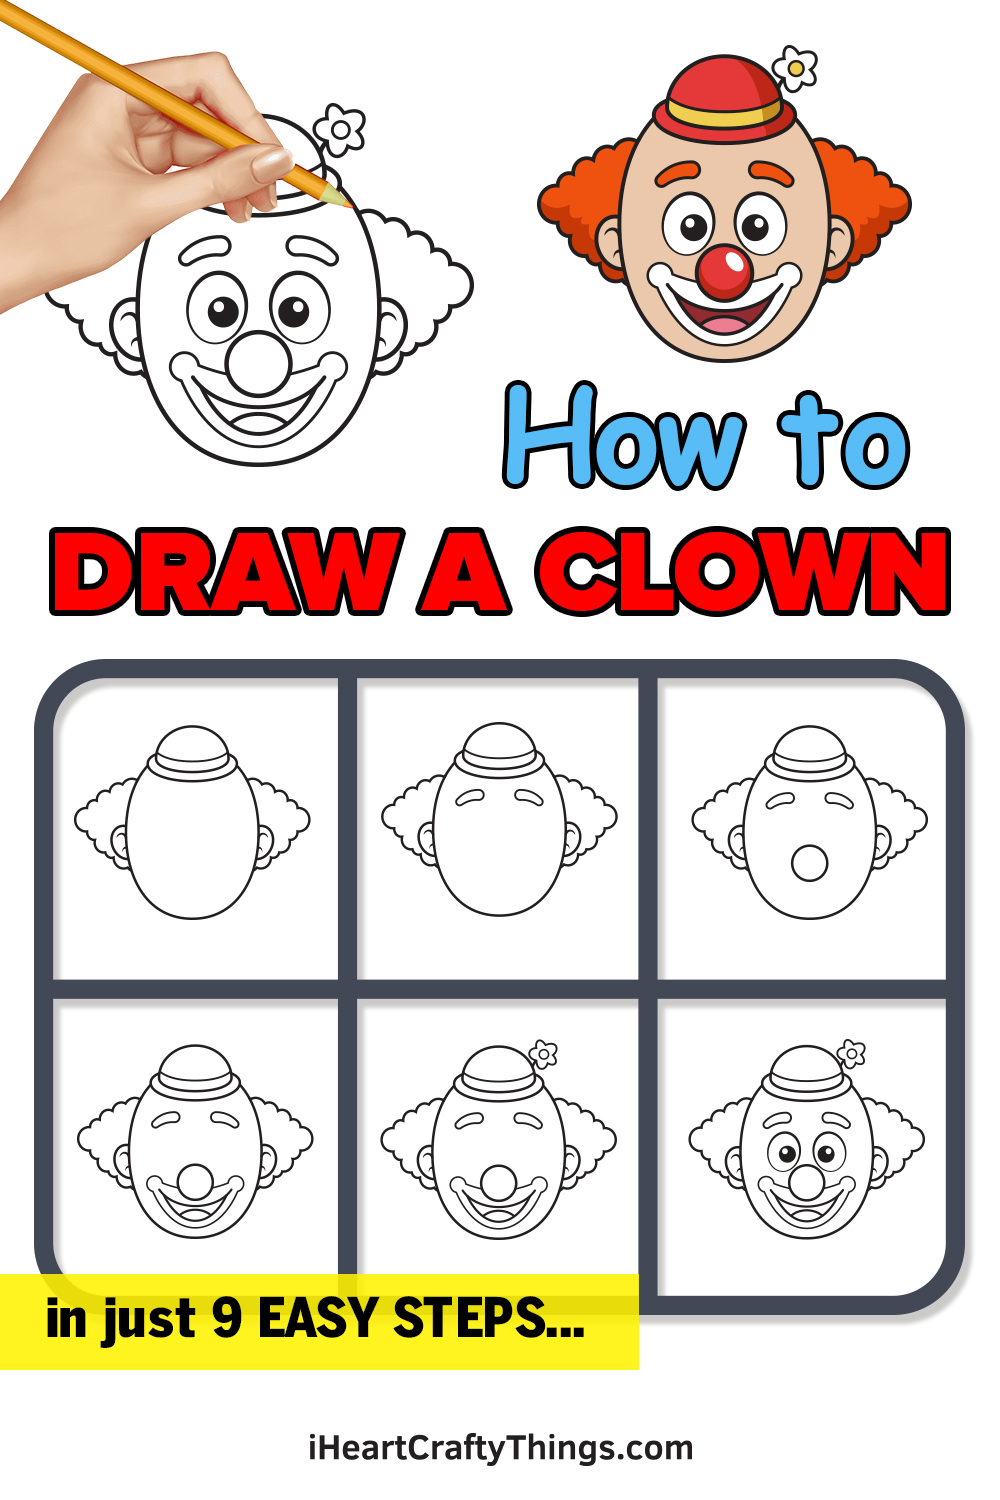 how to draw a clown in 9 easy steps